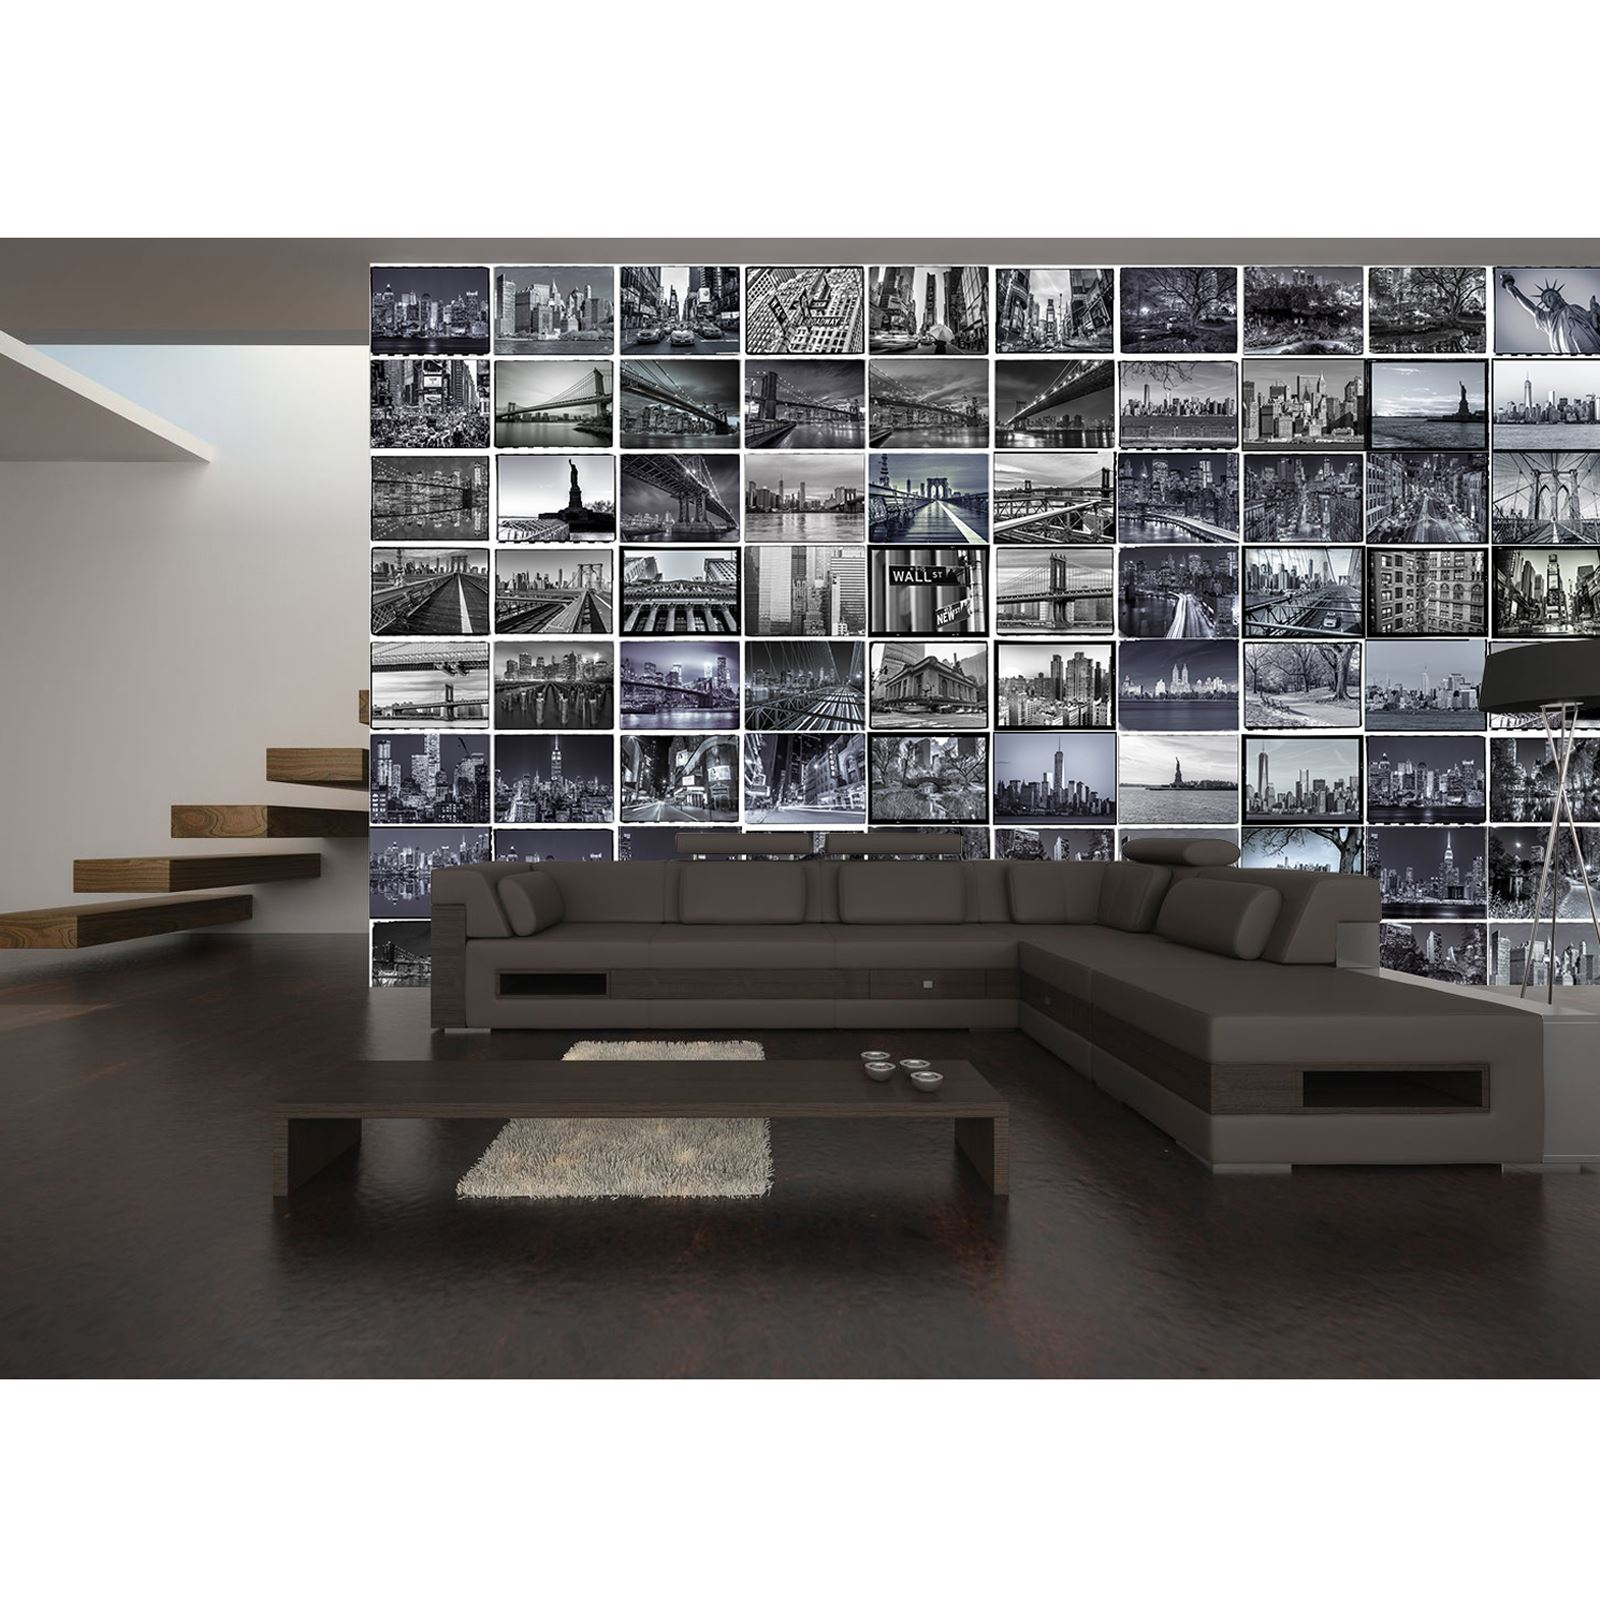 CREATIVE COLLAGE BIG APPLE NEW YORK CITY WALL MURAL   64 PIECE WALLPAPER NYC Part 73